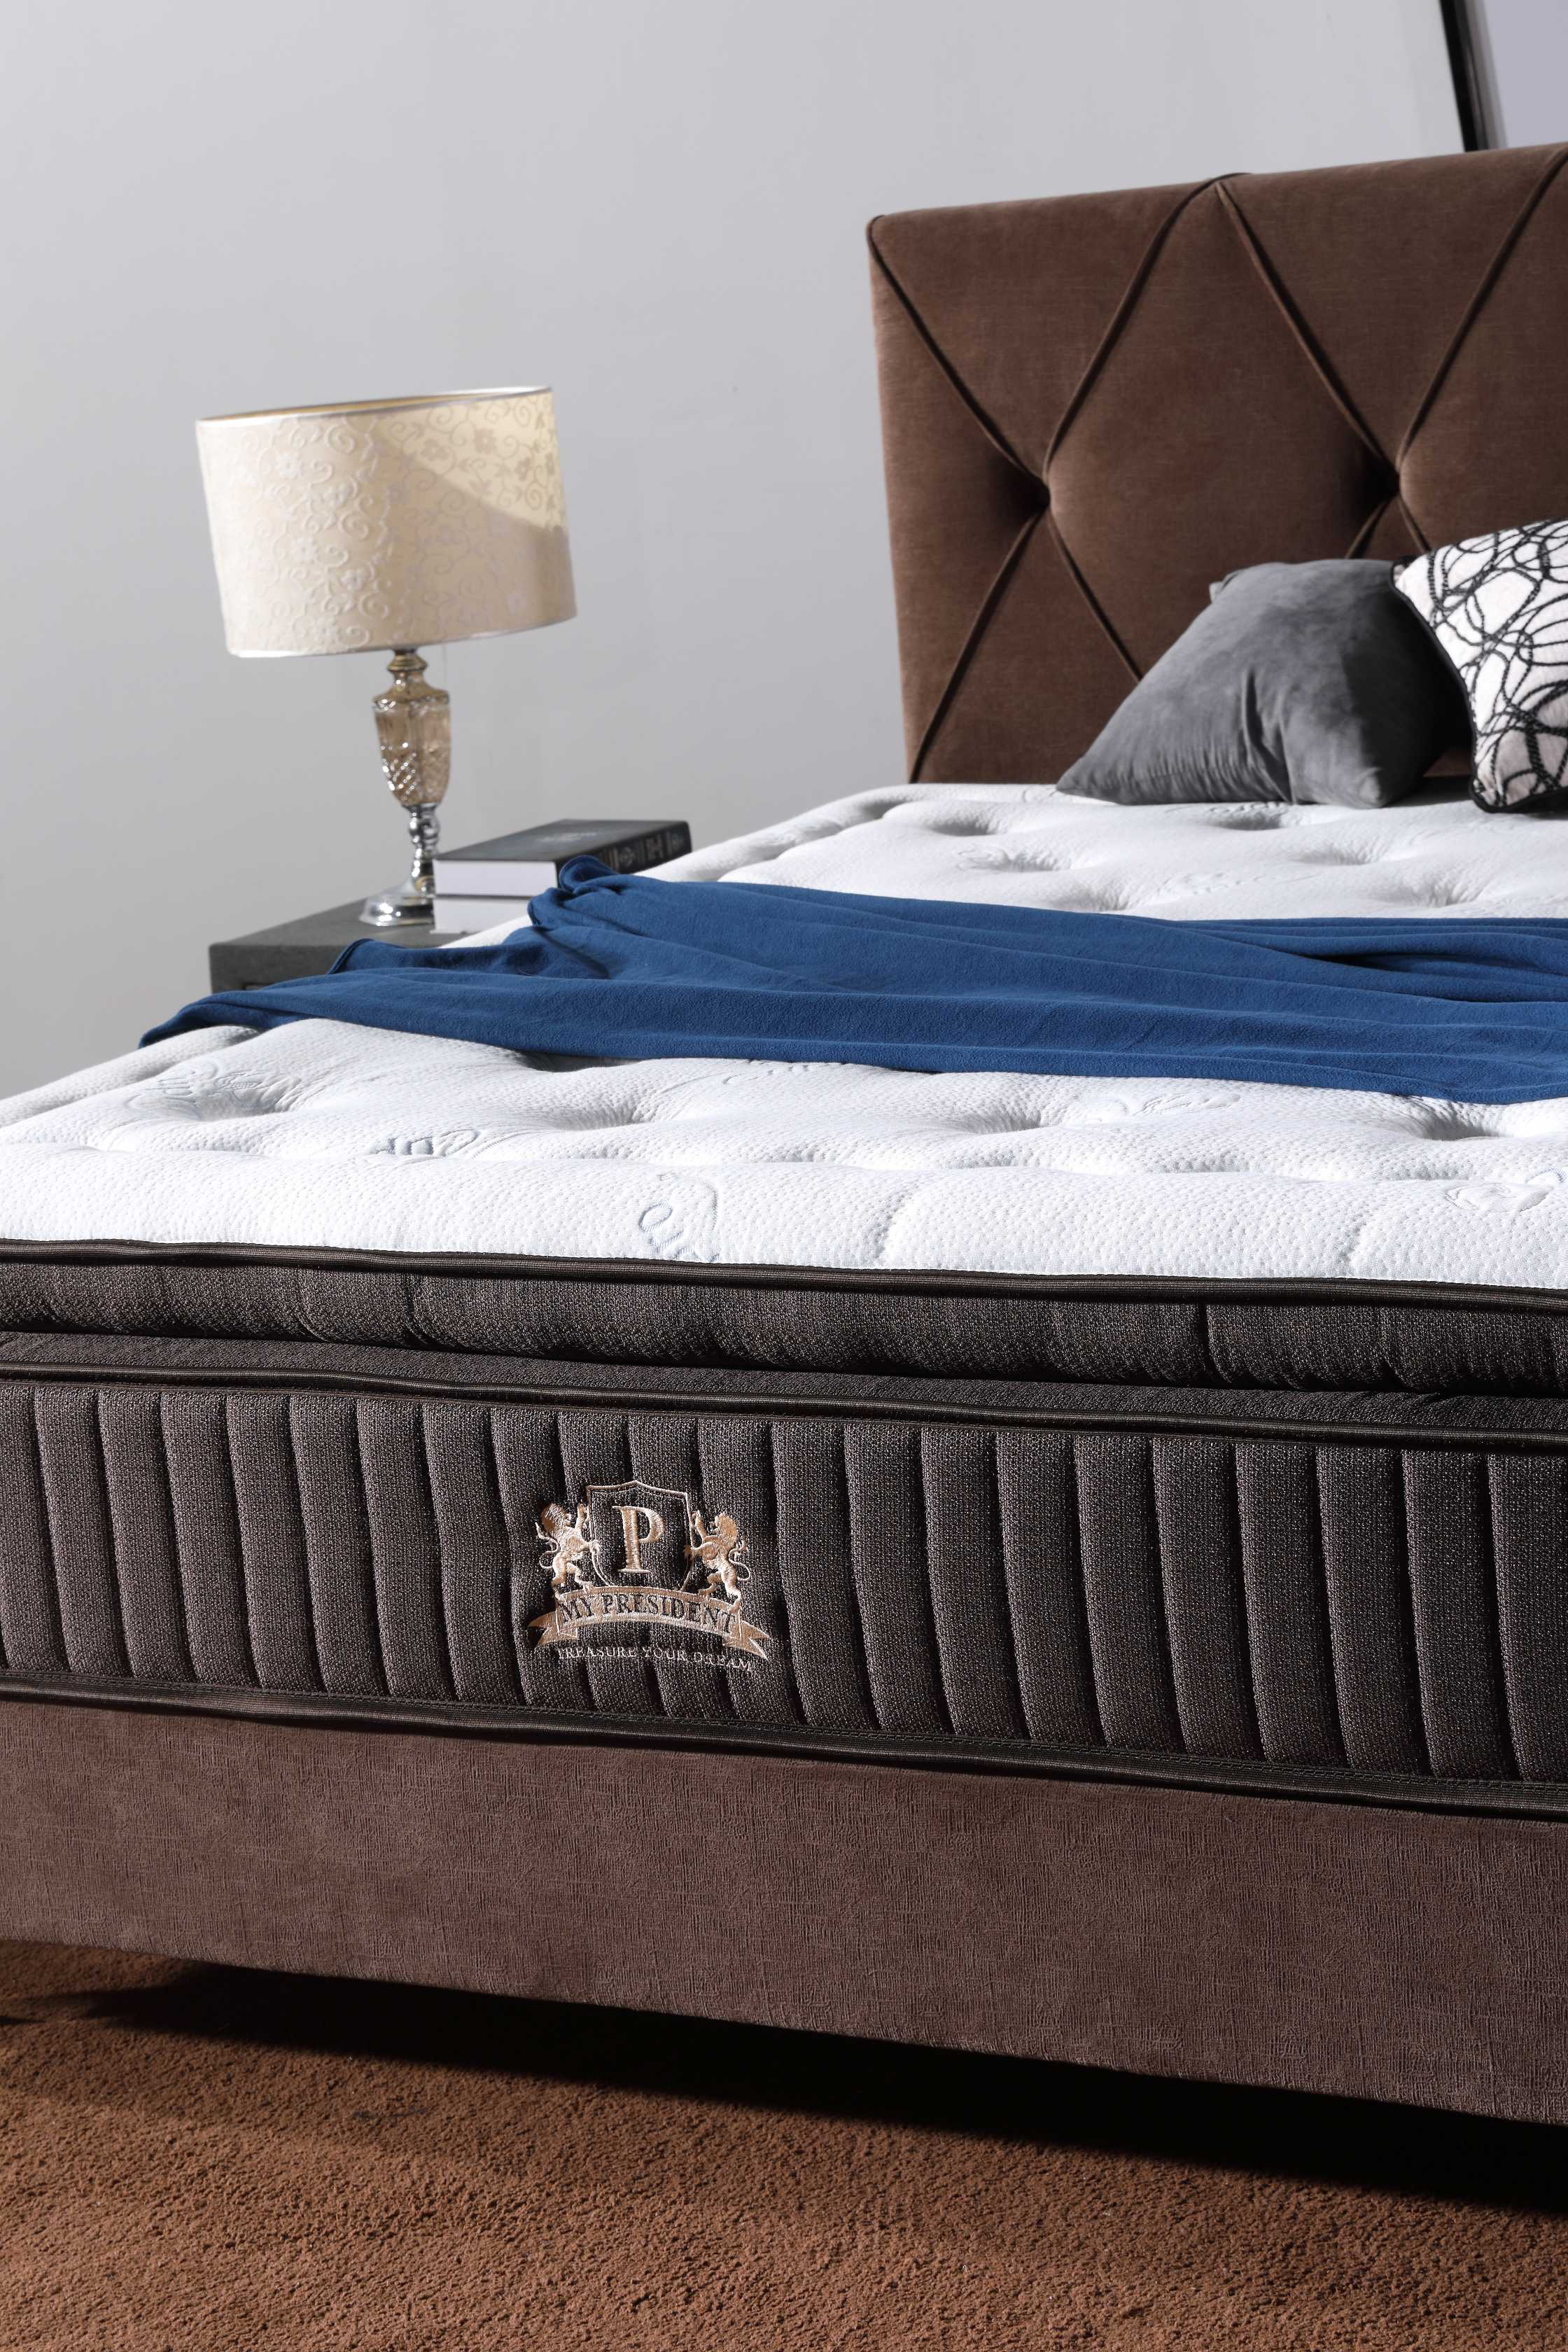 Grab My Ruby top quality Super Single Mattress in Singapore. Call 9067 7990